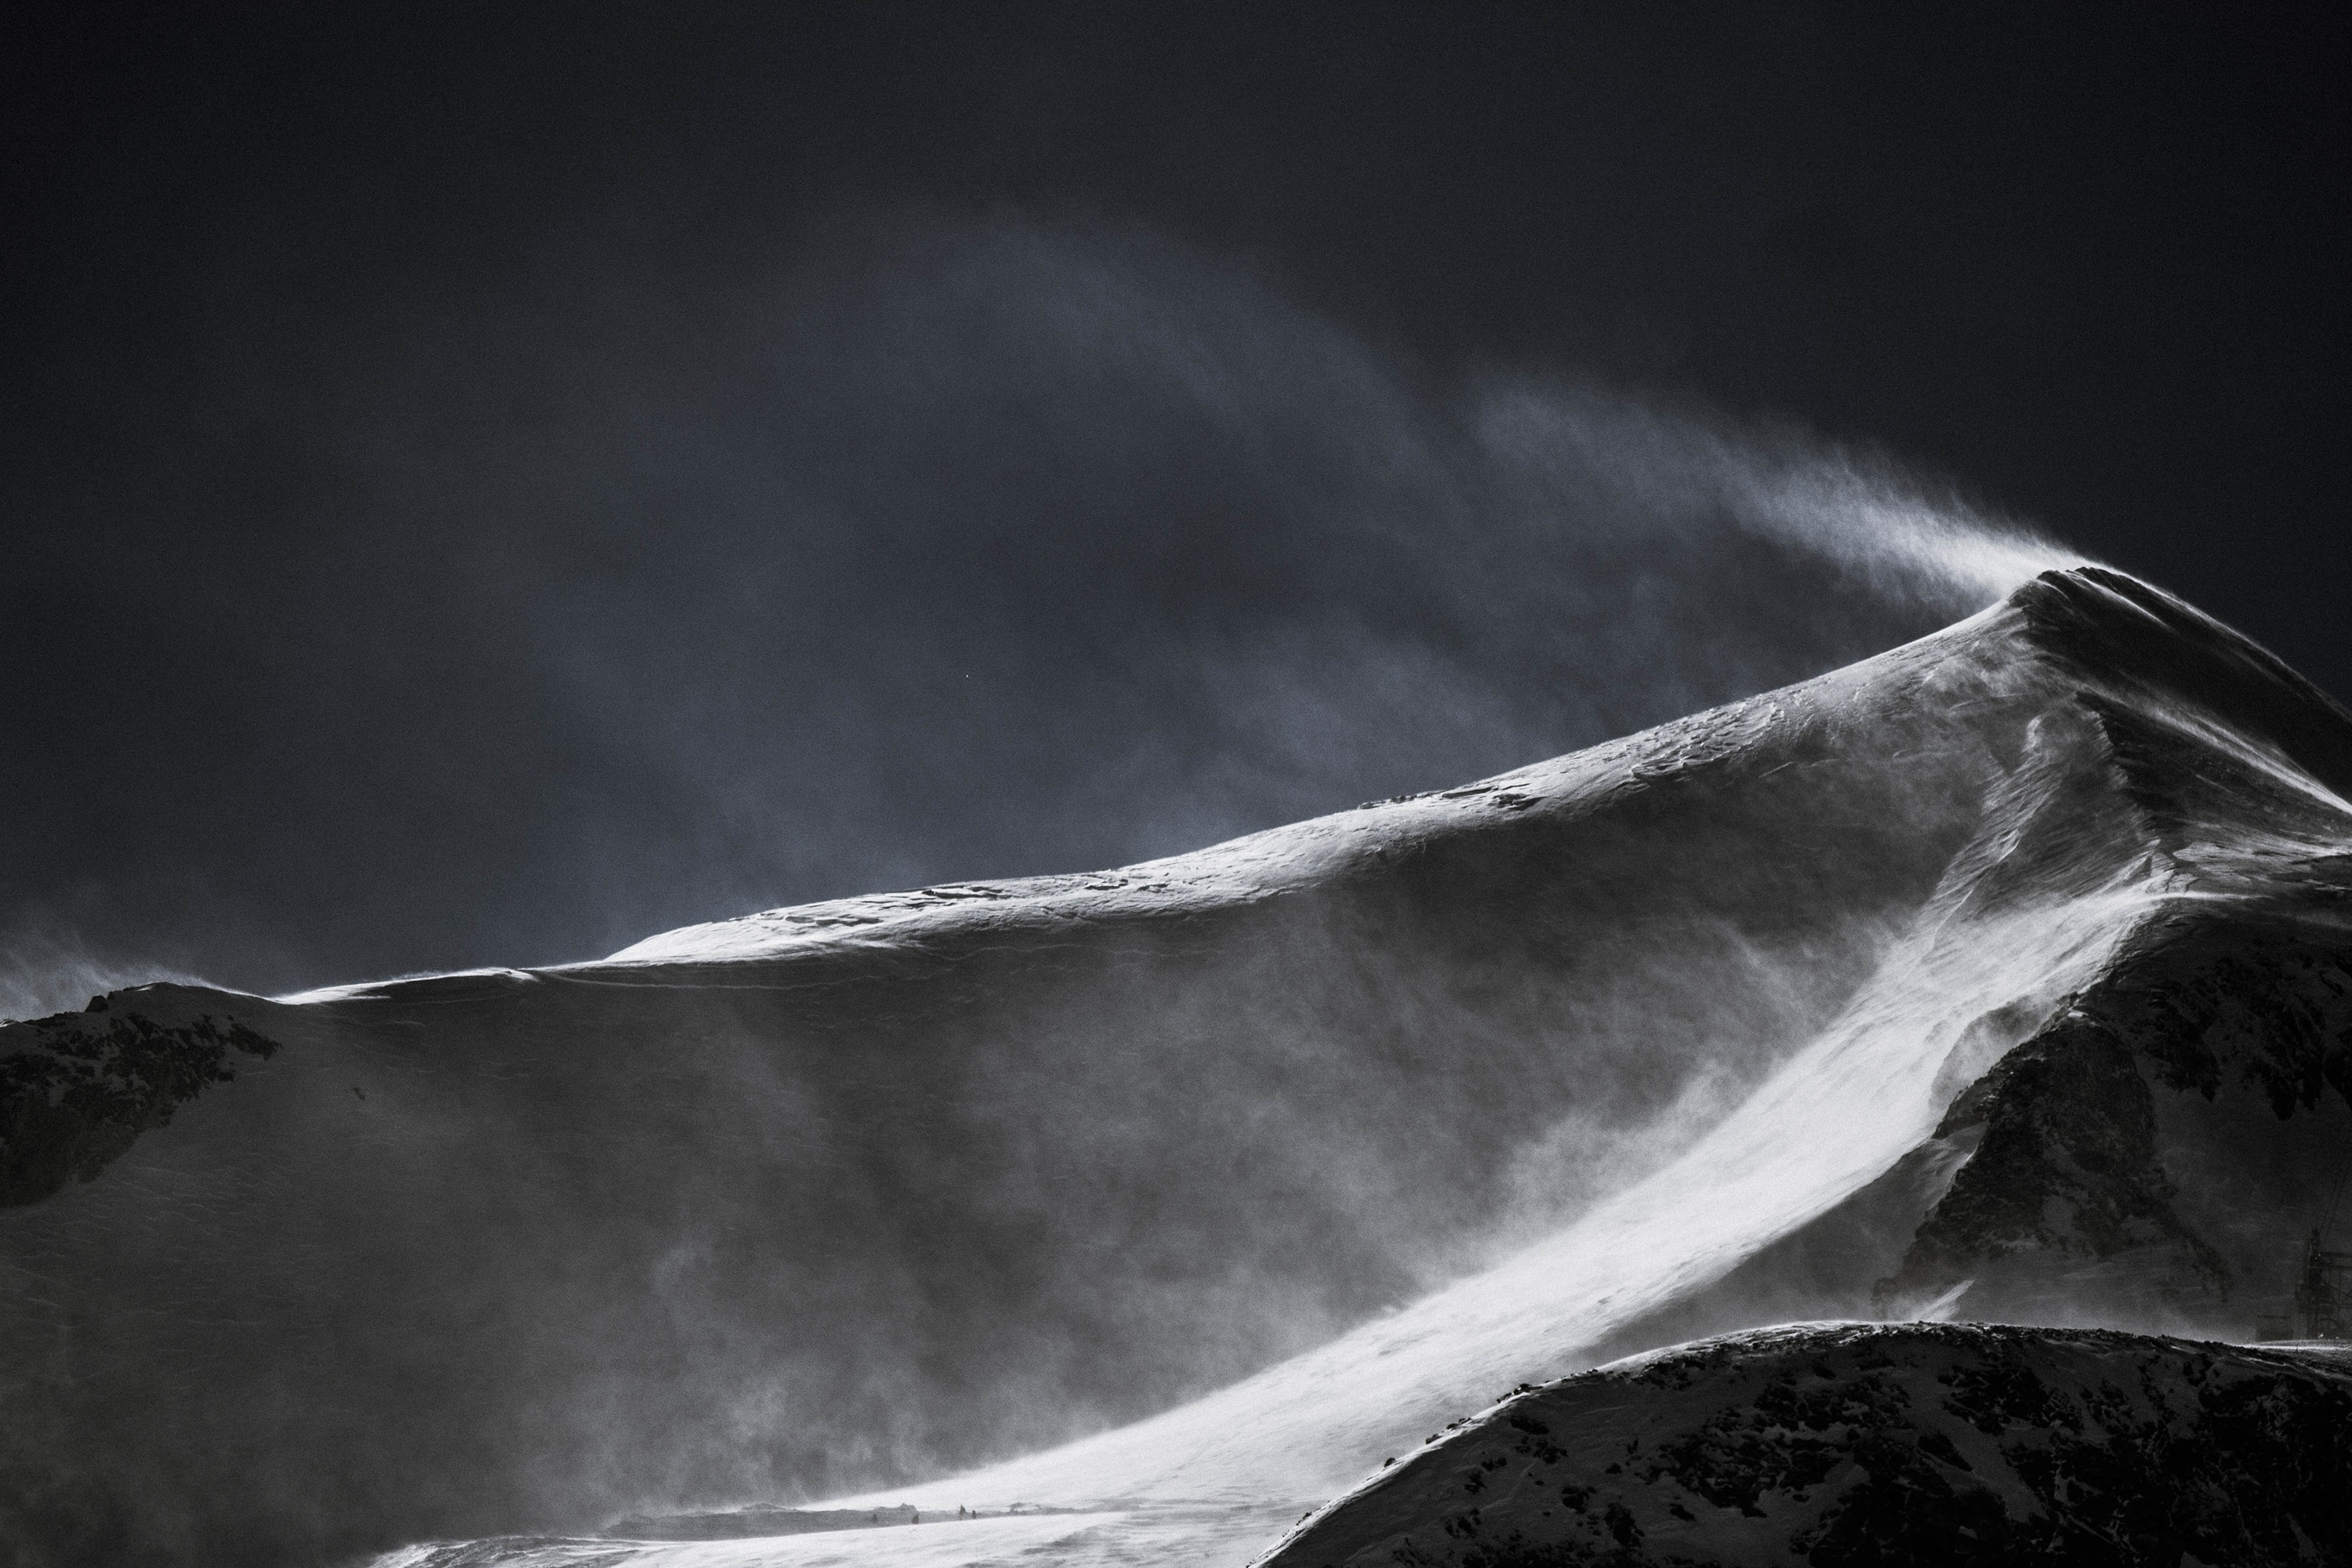 Blowing Over the Top, Blow, Ice, Landscape, Mountain, HQ Photo